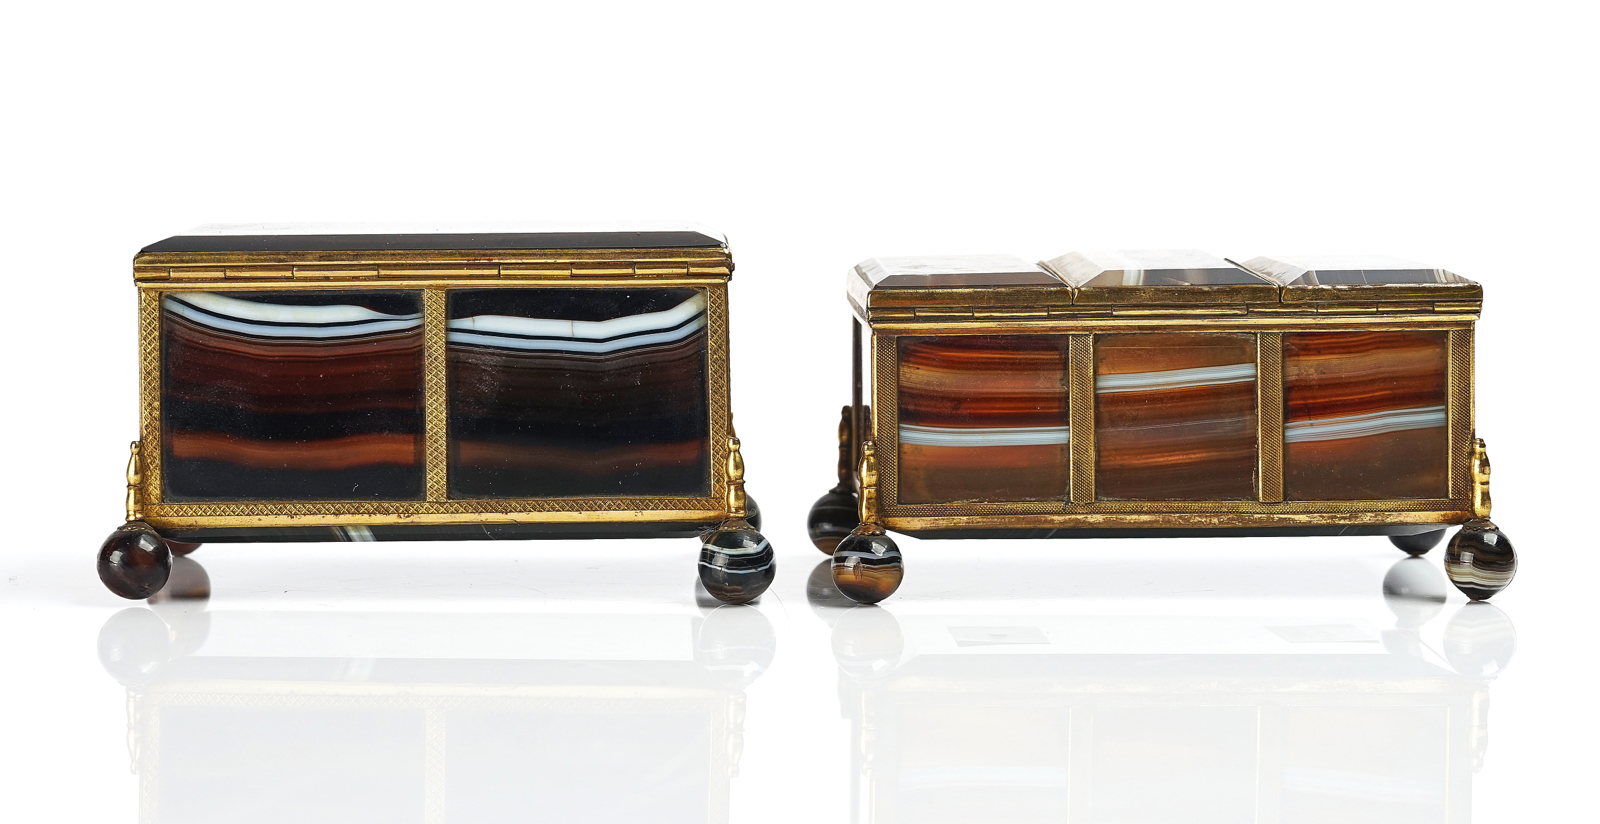 A VICTORIAN ROYAL PRESENTATION FRENCH ORMOLU MOUNTED AGATE CASKET AND ANOTHER SIMILAR - Image 3 of 5